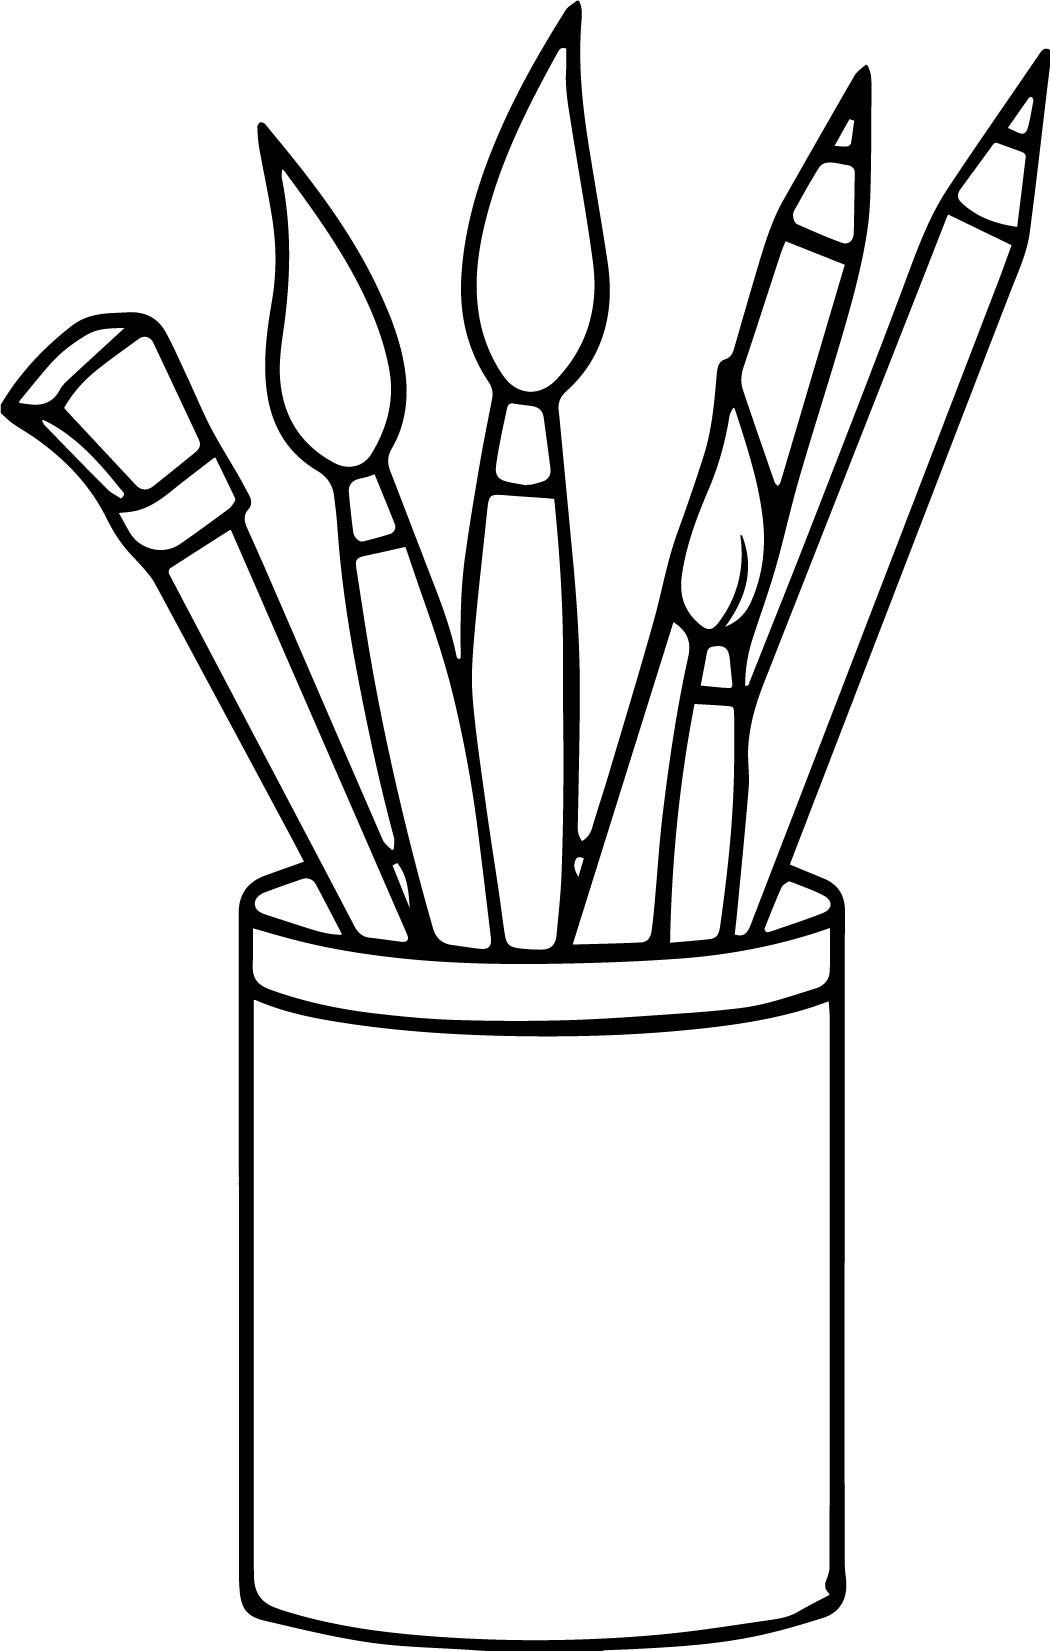 Art Supplies Clipart Black And White Letters With Art